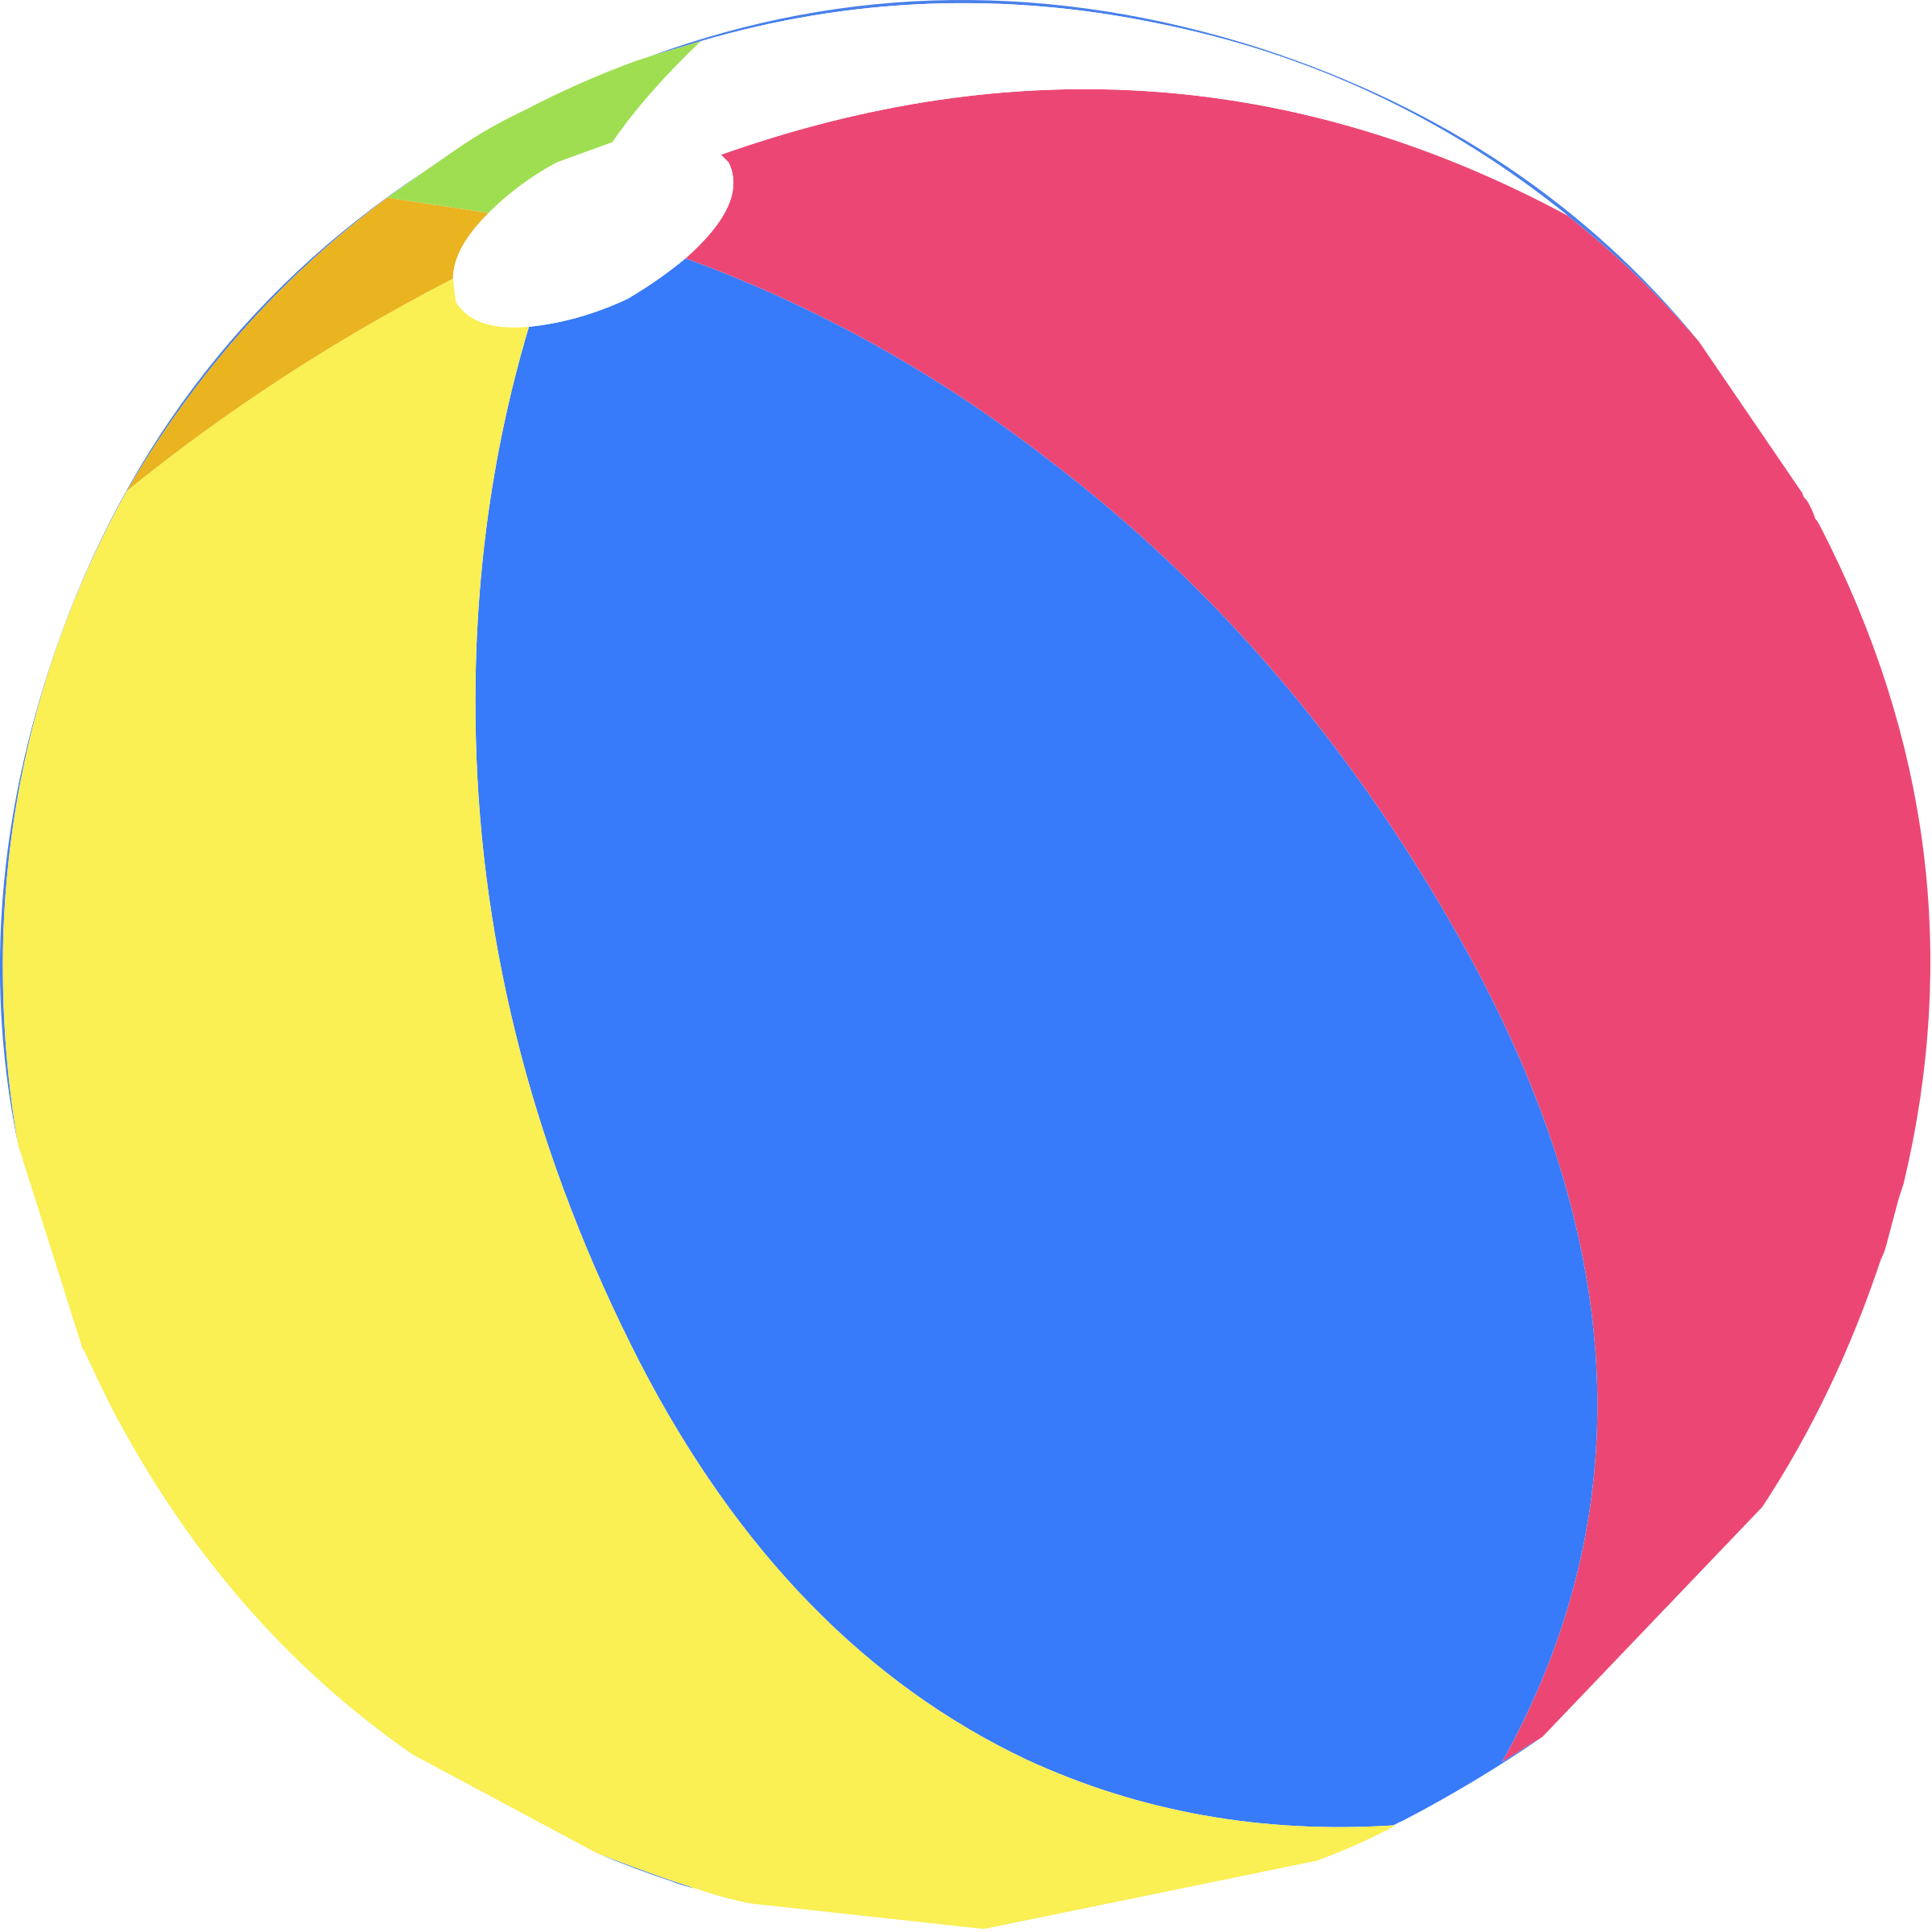 Beach ball clipart png. Collection of high